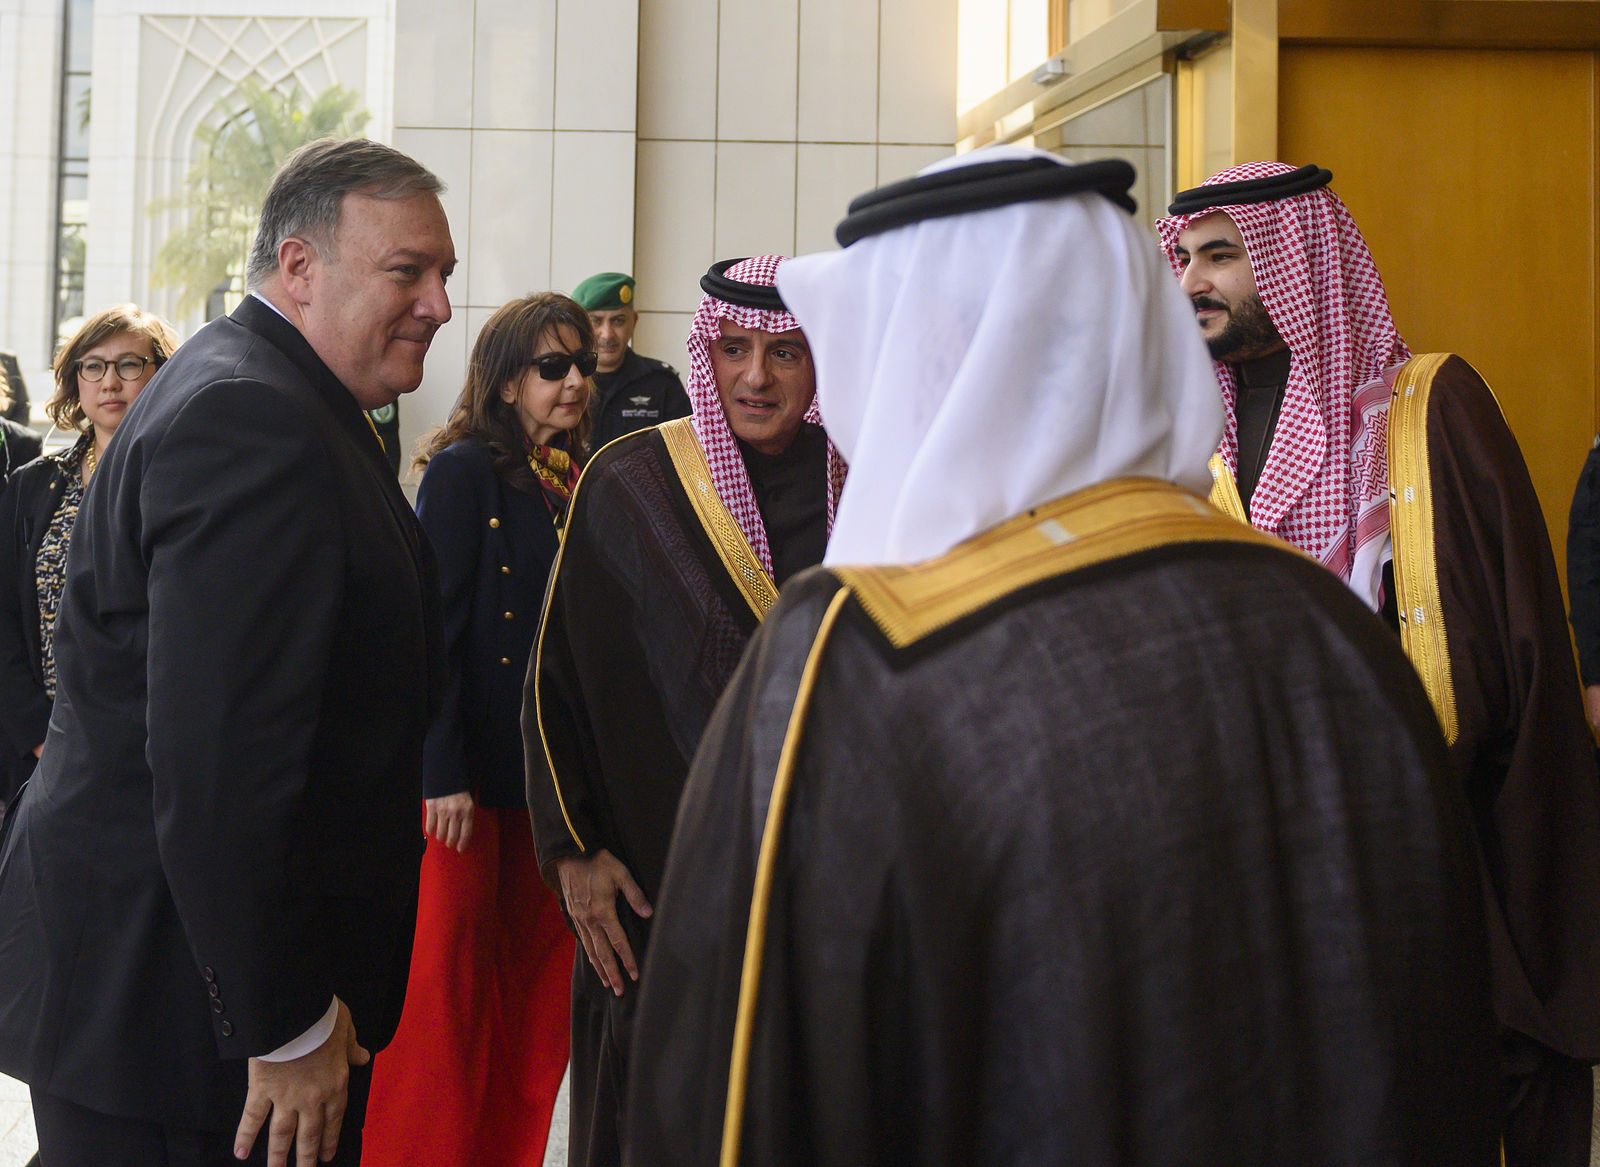 U.S. Secretary of State Mike Pompeo, left, is received by Saudi Minister of State for Foreign Affairs Adel al-Jubeir, center, at the Royal Court, in Riyadh, Saudi Arabia. Monday, January 14, 2019.{ } (Andrew Cabellero-Reynolds/Pool via AP)